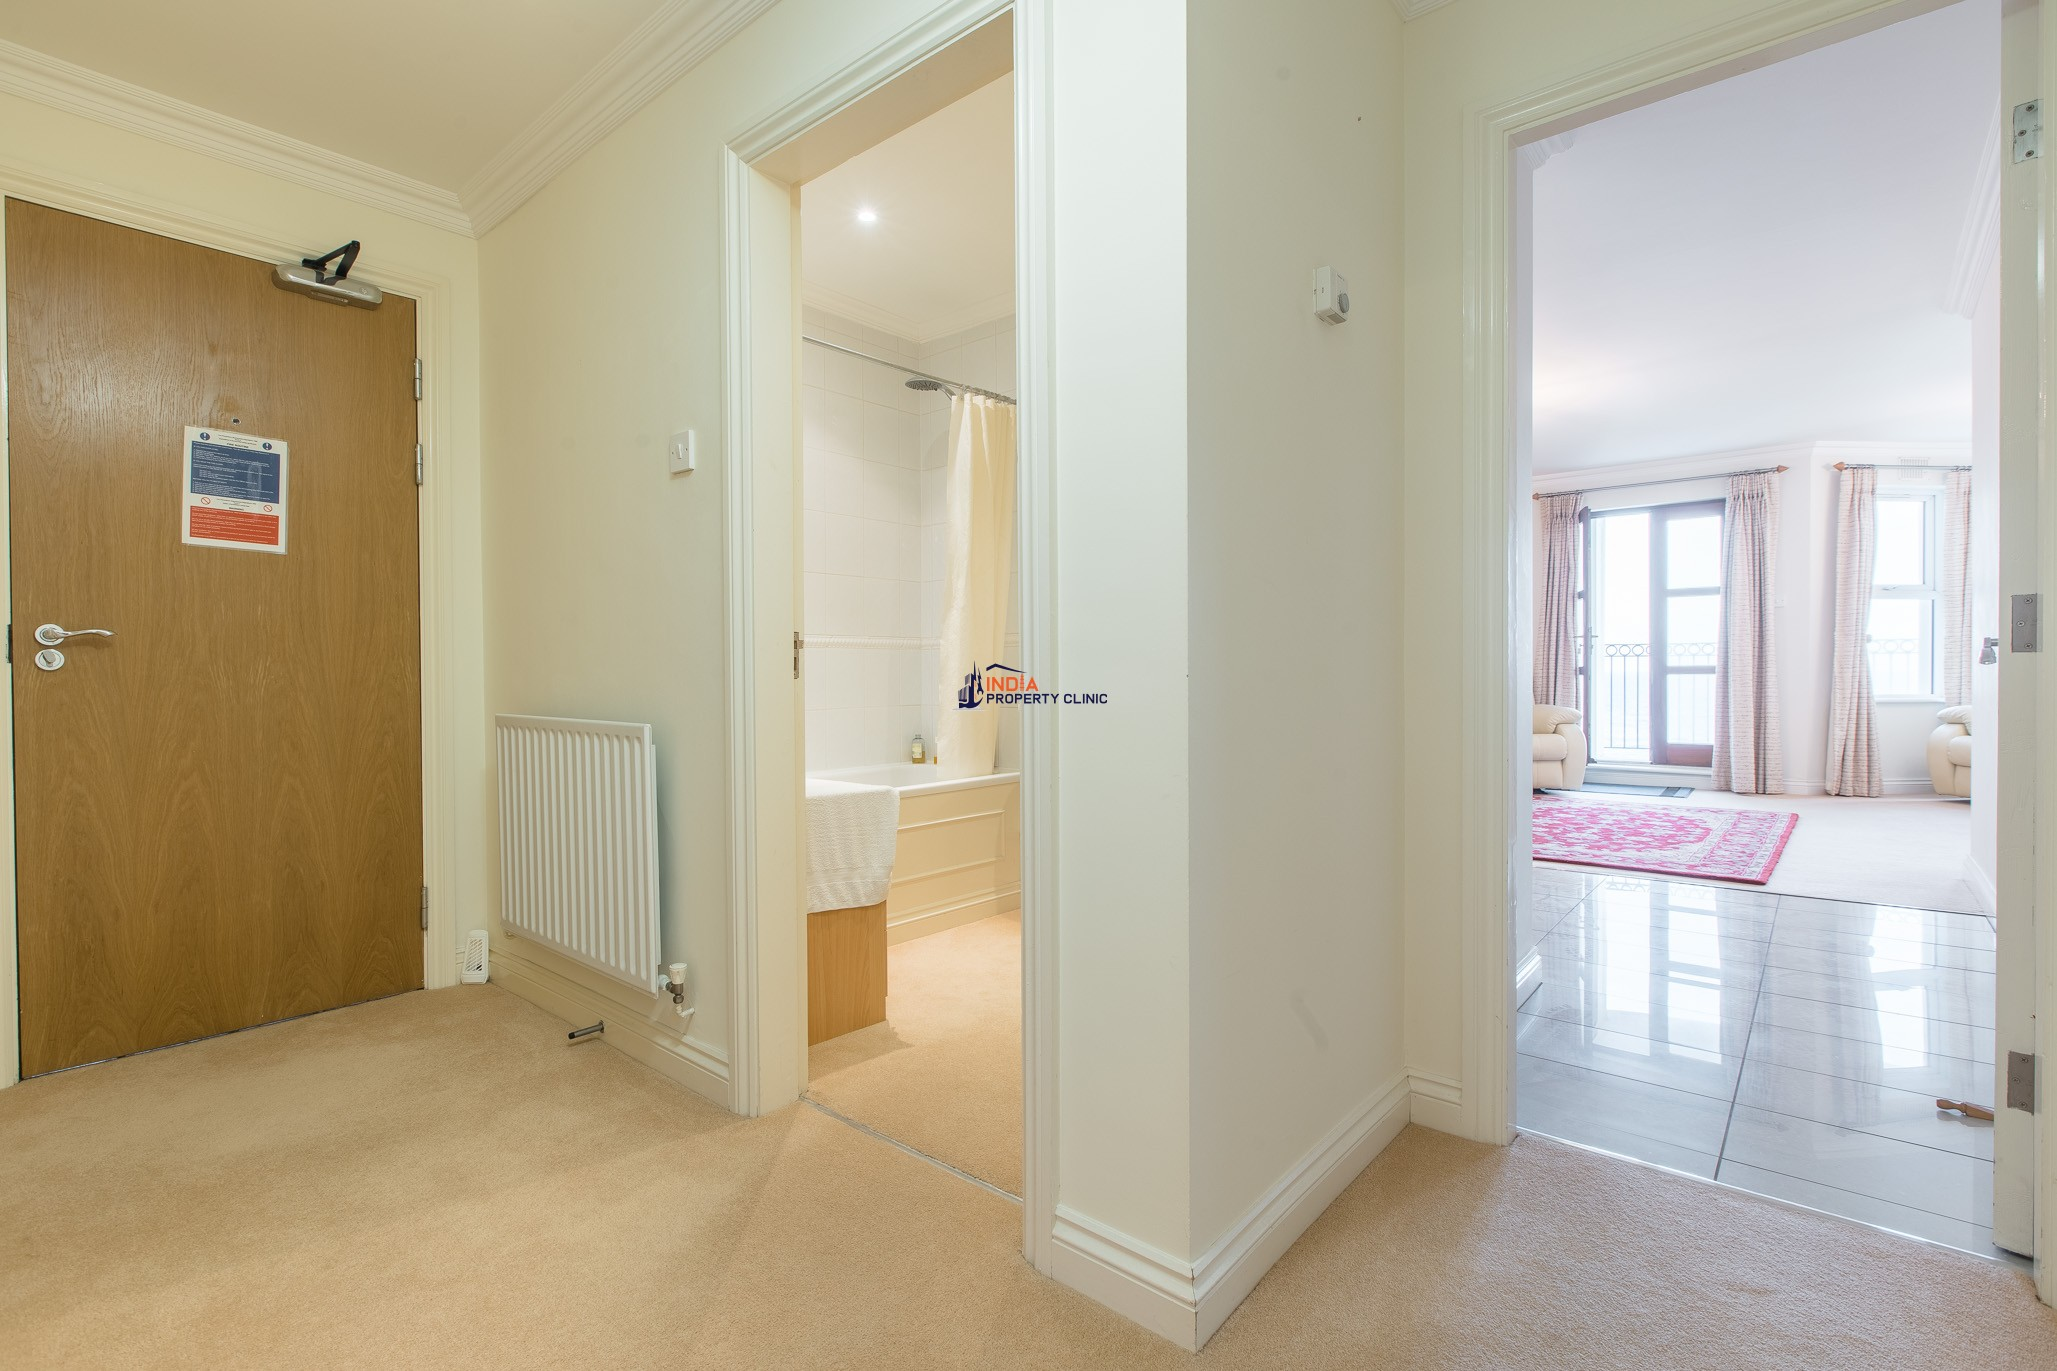 2 Bedroom Home for Sale in Havers Hill